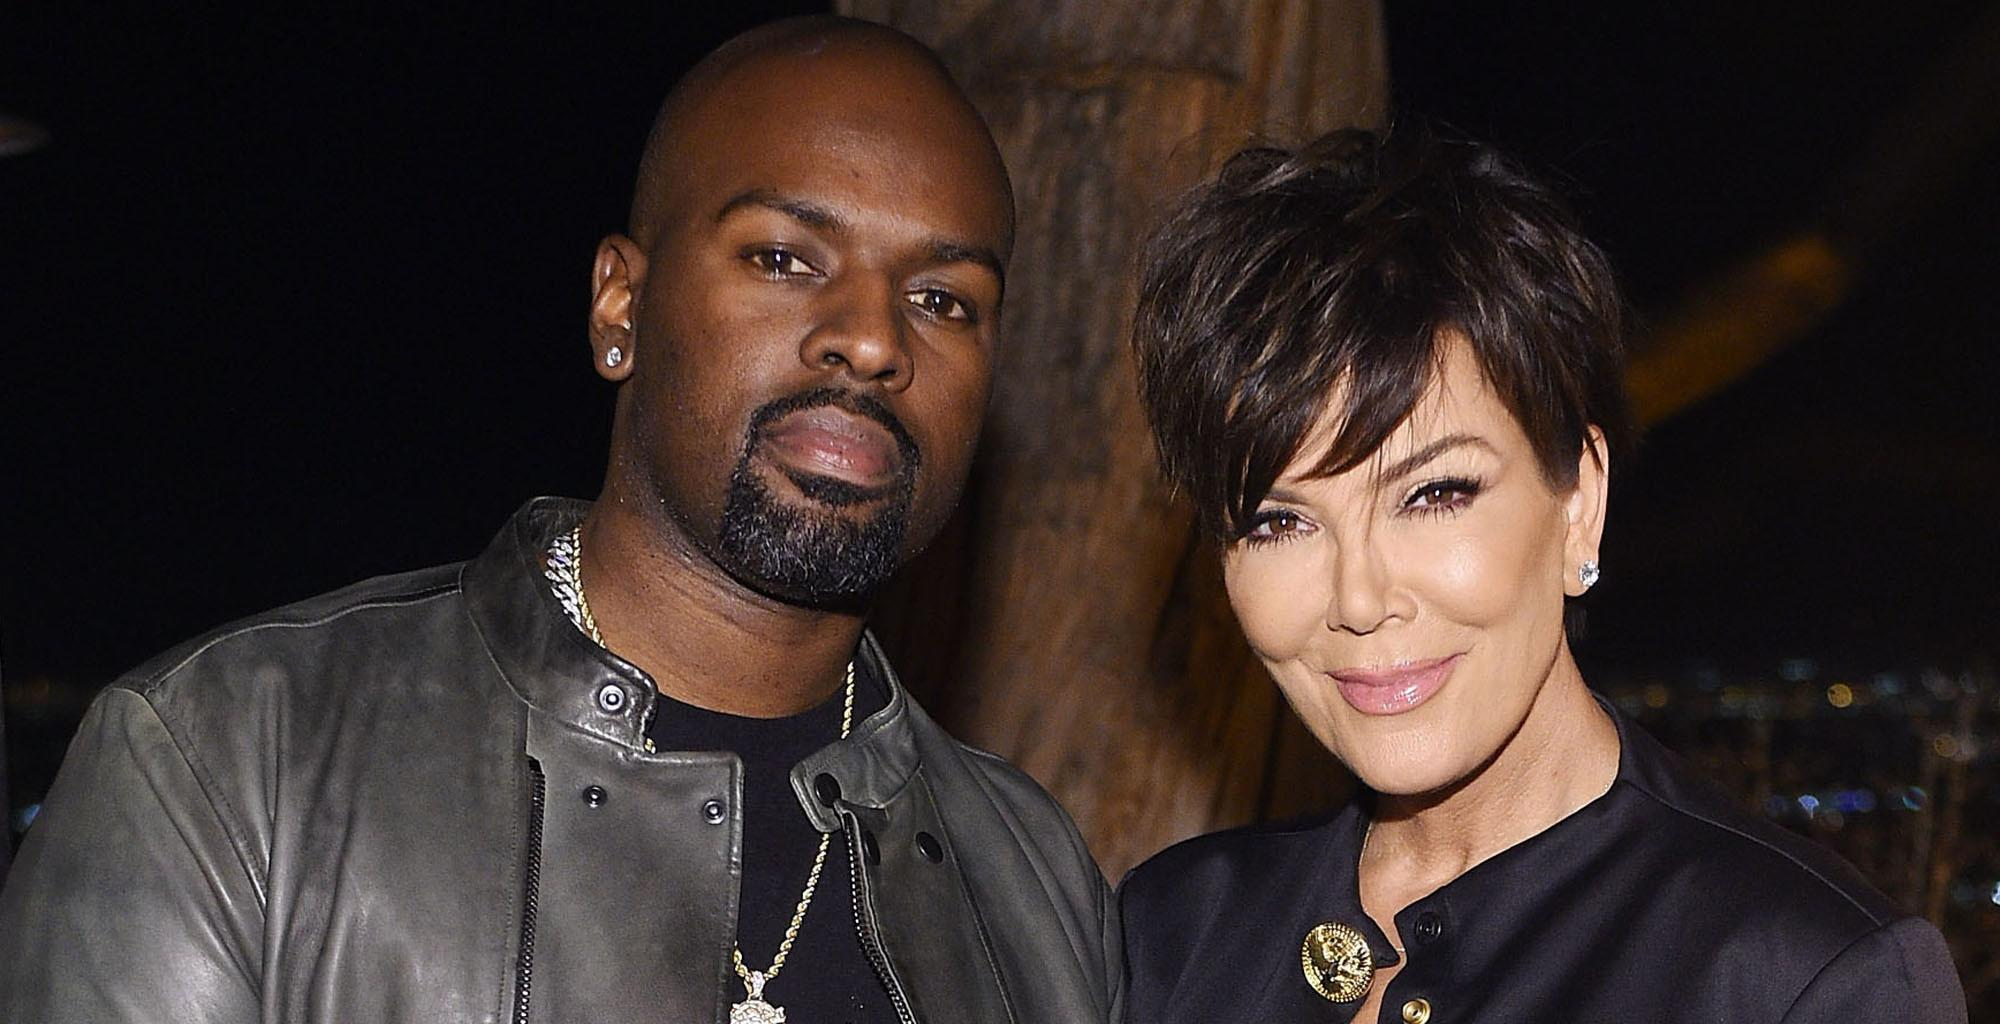 KUWK: Here's How Kris Jenner Reacted To That Video Of Daughter Kylie Jenner Grinding On Her BF Corey Gamble